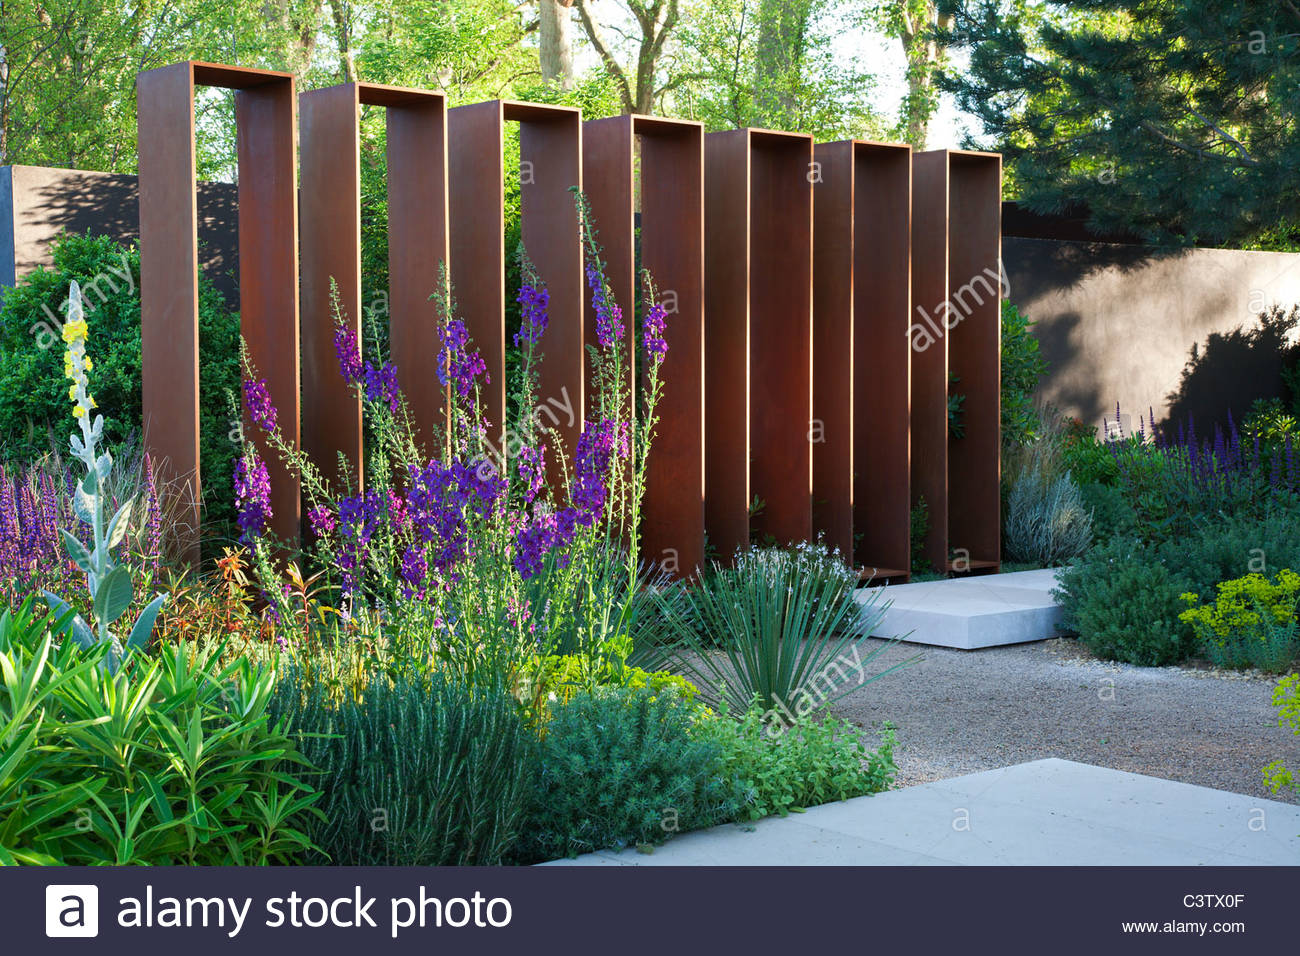 Corten steel screen structure in the daily telegraph for Garden design ideas rhs